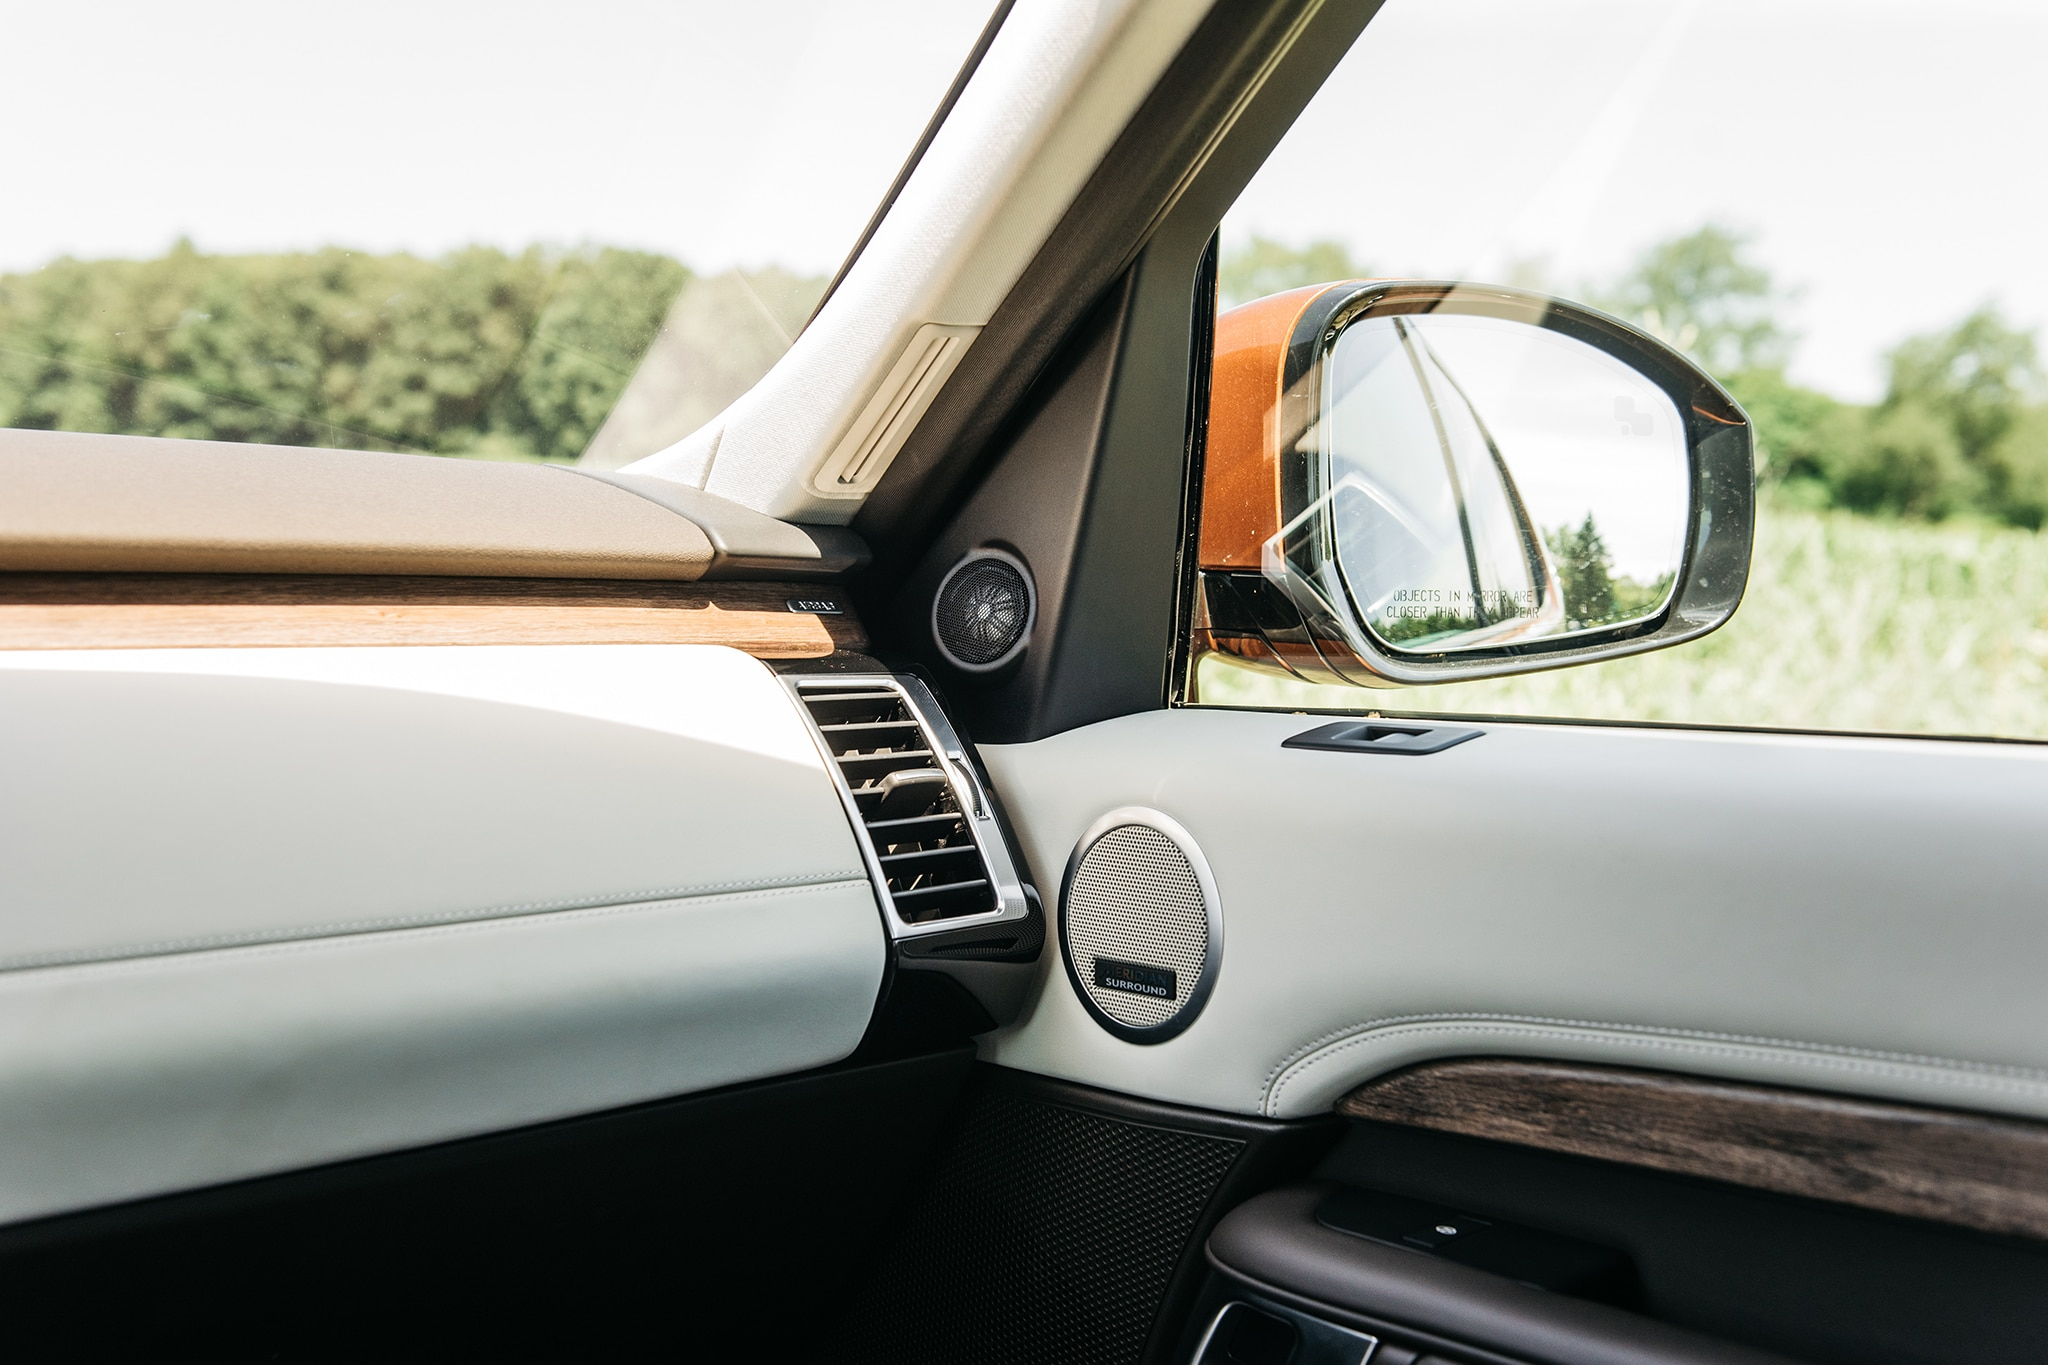 2017 Land Rover Discovery Td6 HSE Interior Trim